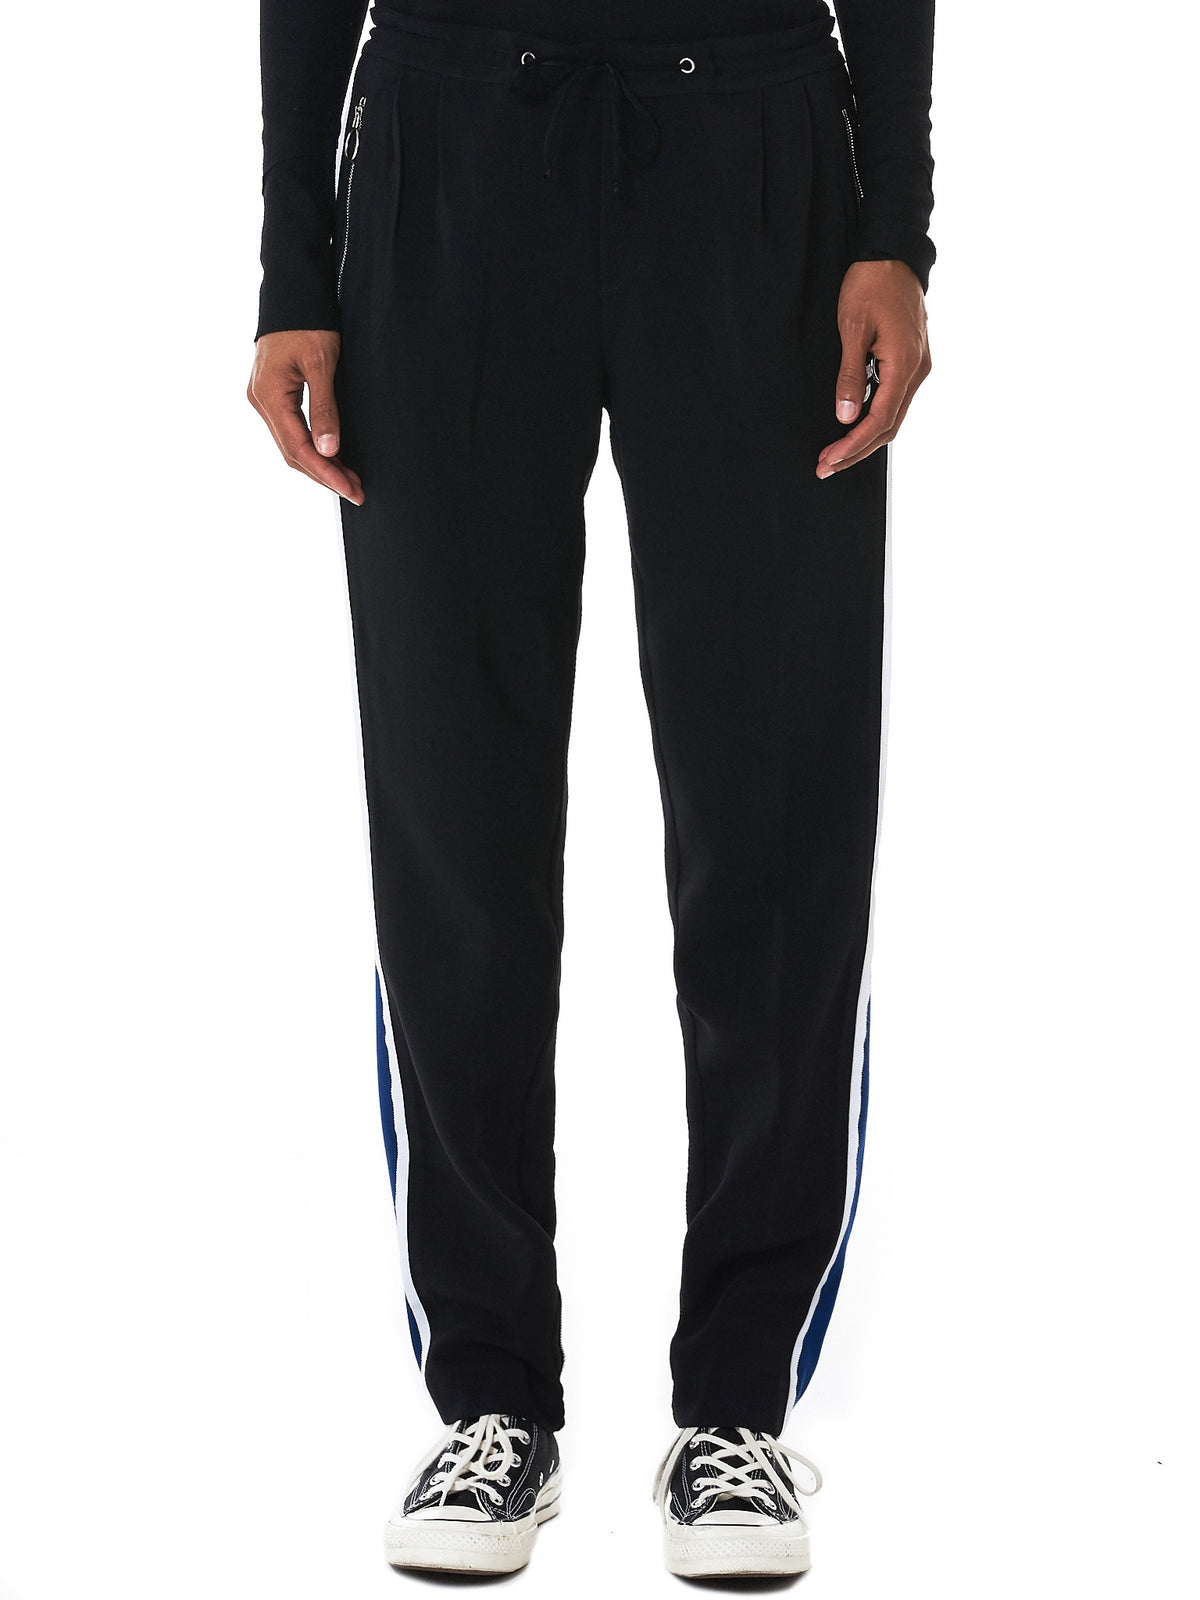 Tim Coppens- HLorenzo track pants front view